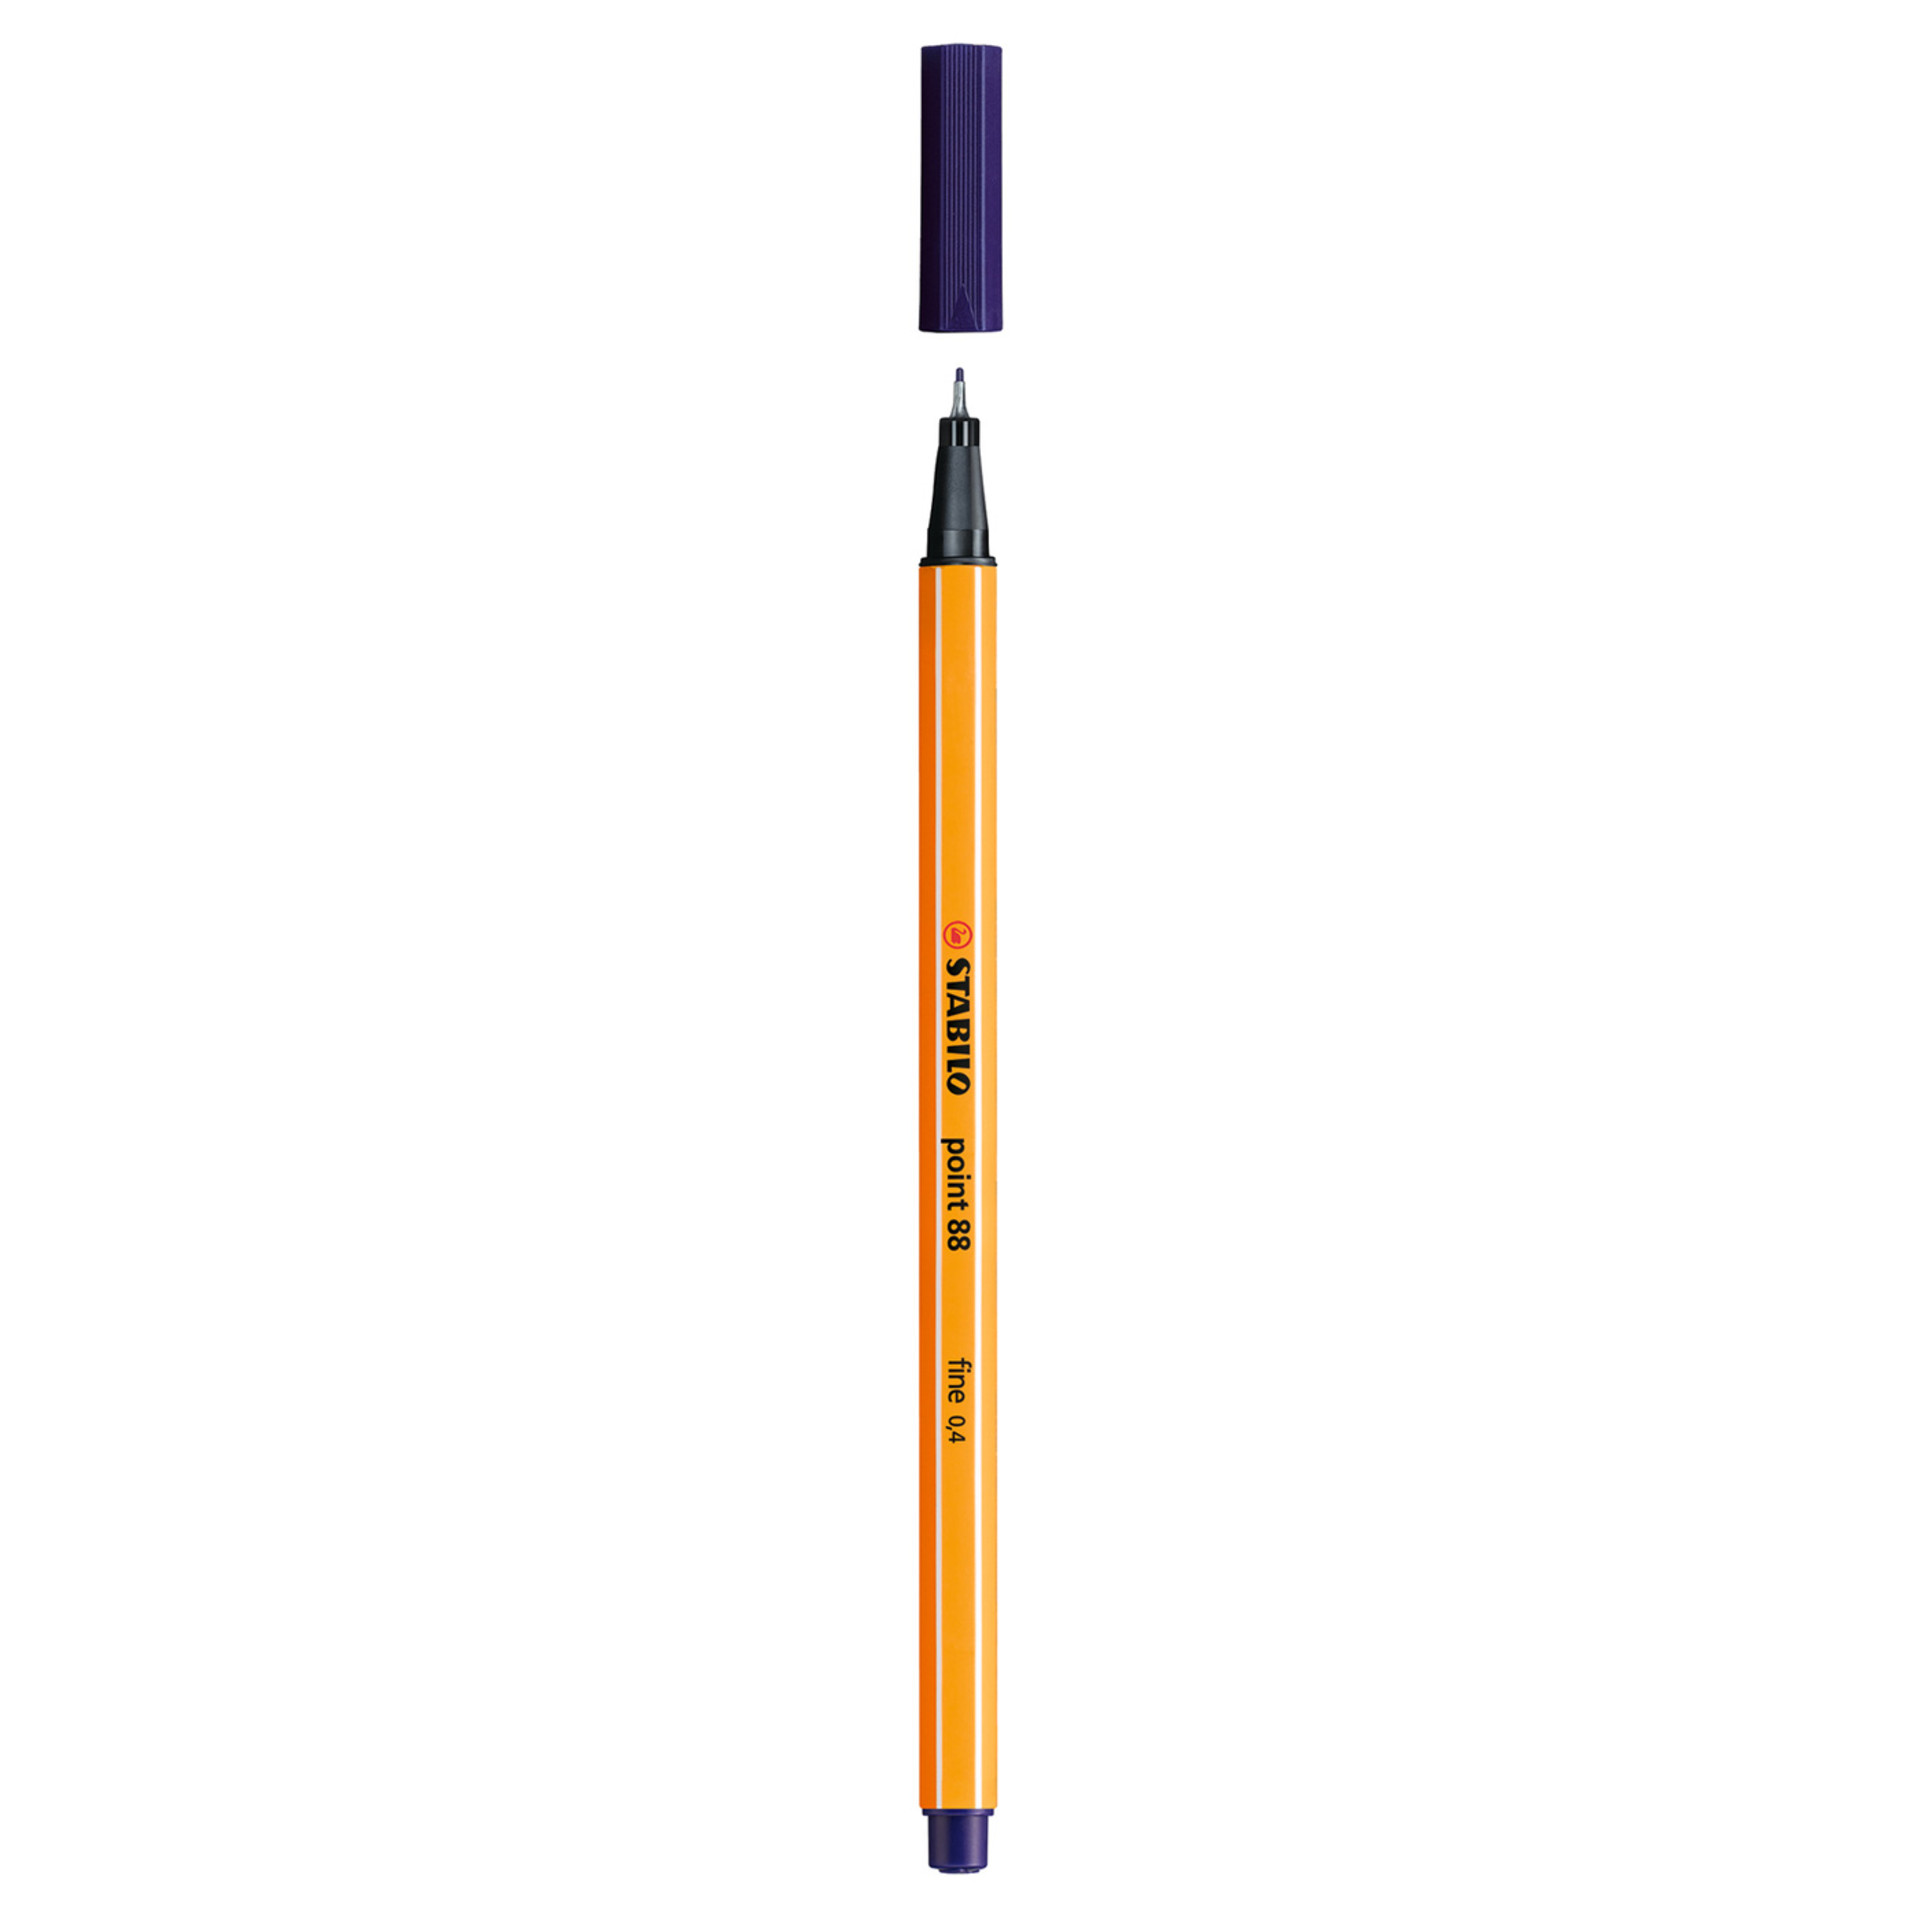 Stabilo Point 88 .4mm Fineliner Pen – Midnight Blue